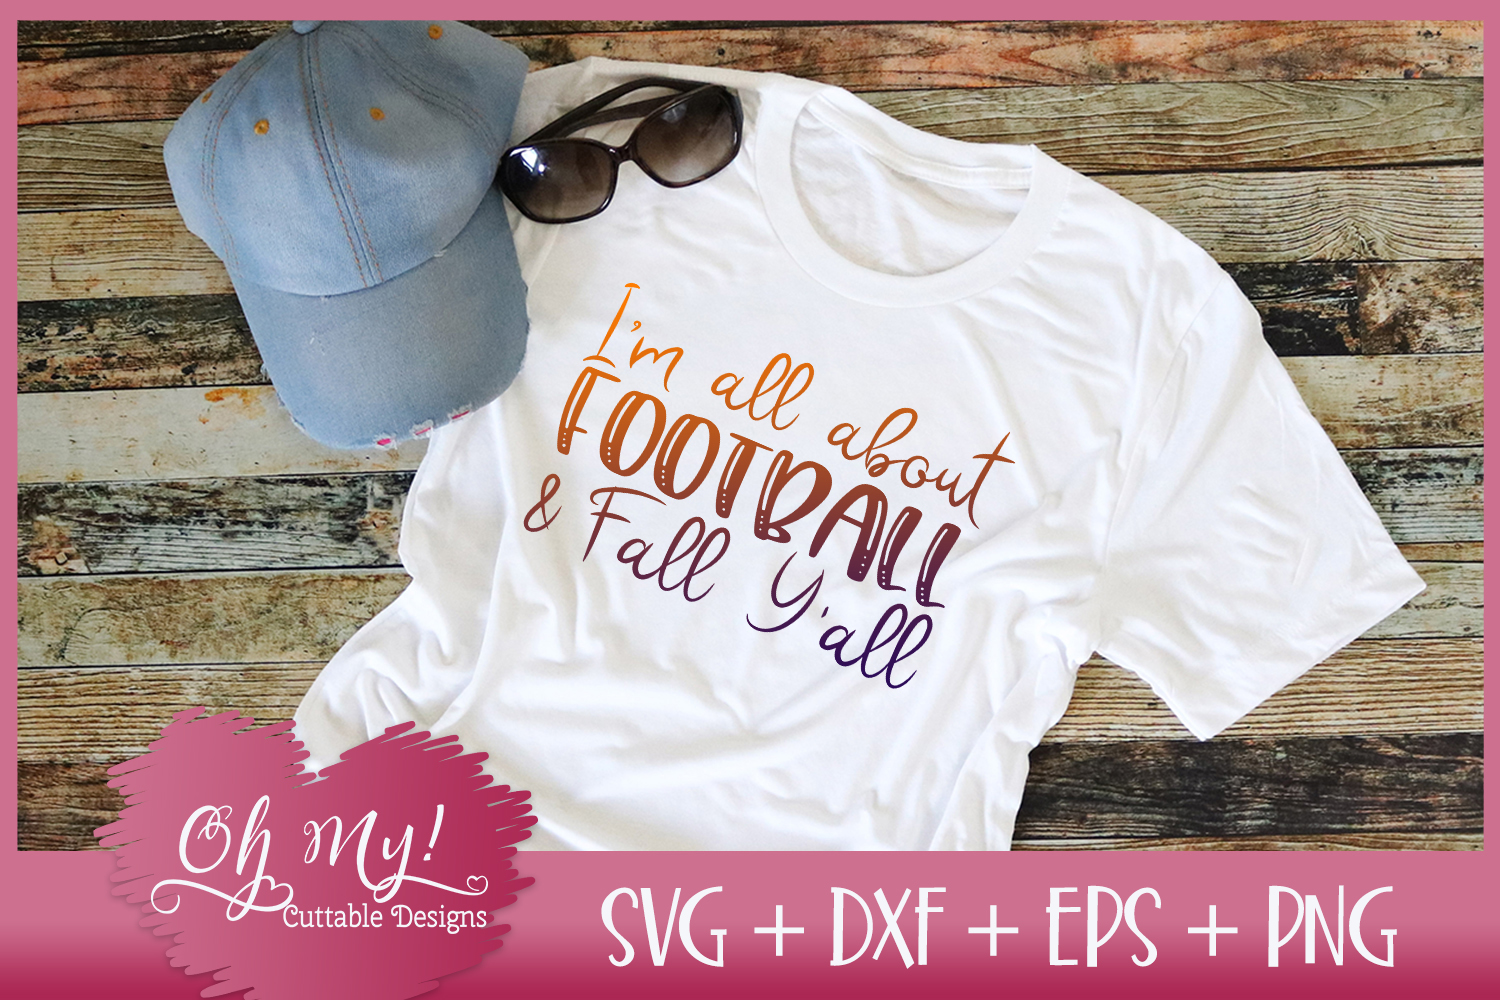 I'm All About Football And Fall Y'all - SVG DXF EPS PNG example image 2